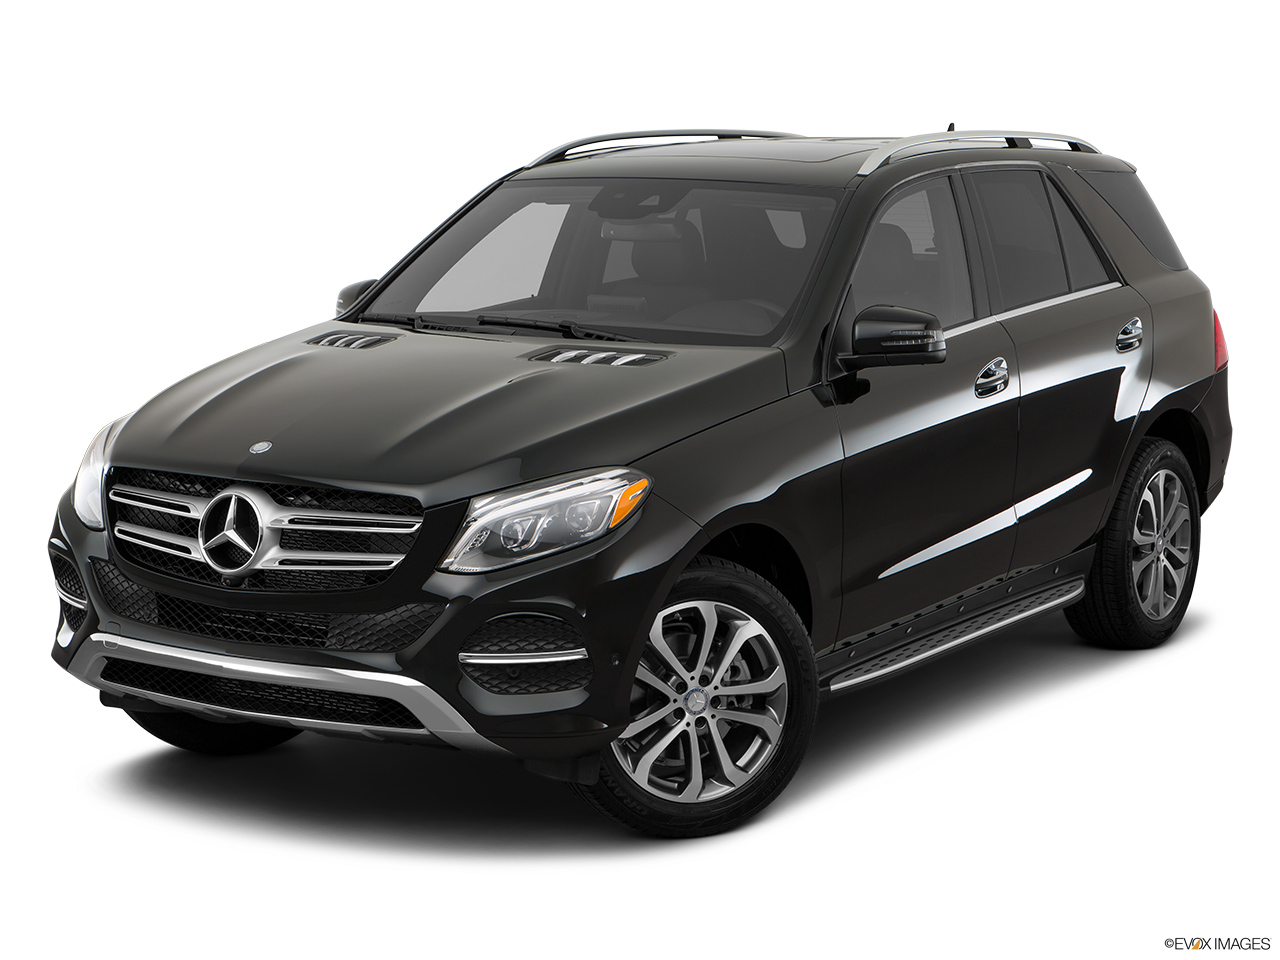 mercedes benz gle class 2017 gle 500 e 4matic in uae new. Black Bedroom Furniture Sets. Home Design Ideas